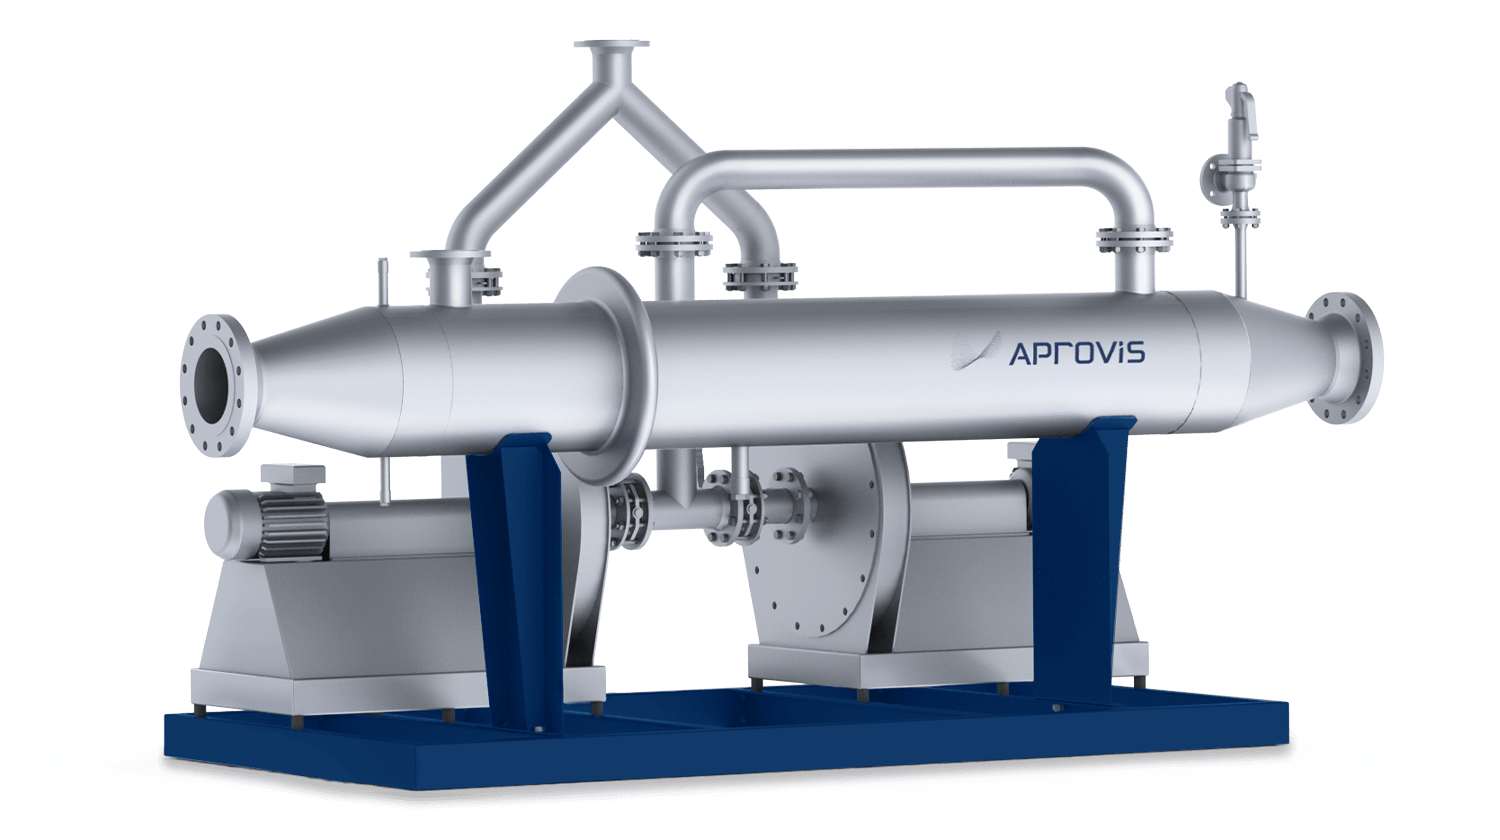 APROVIS gland steam condensers